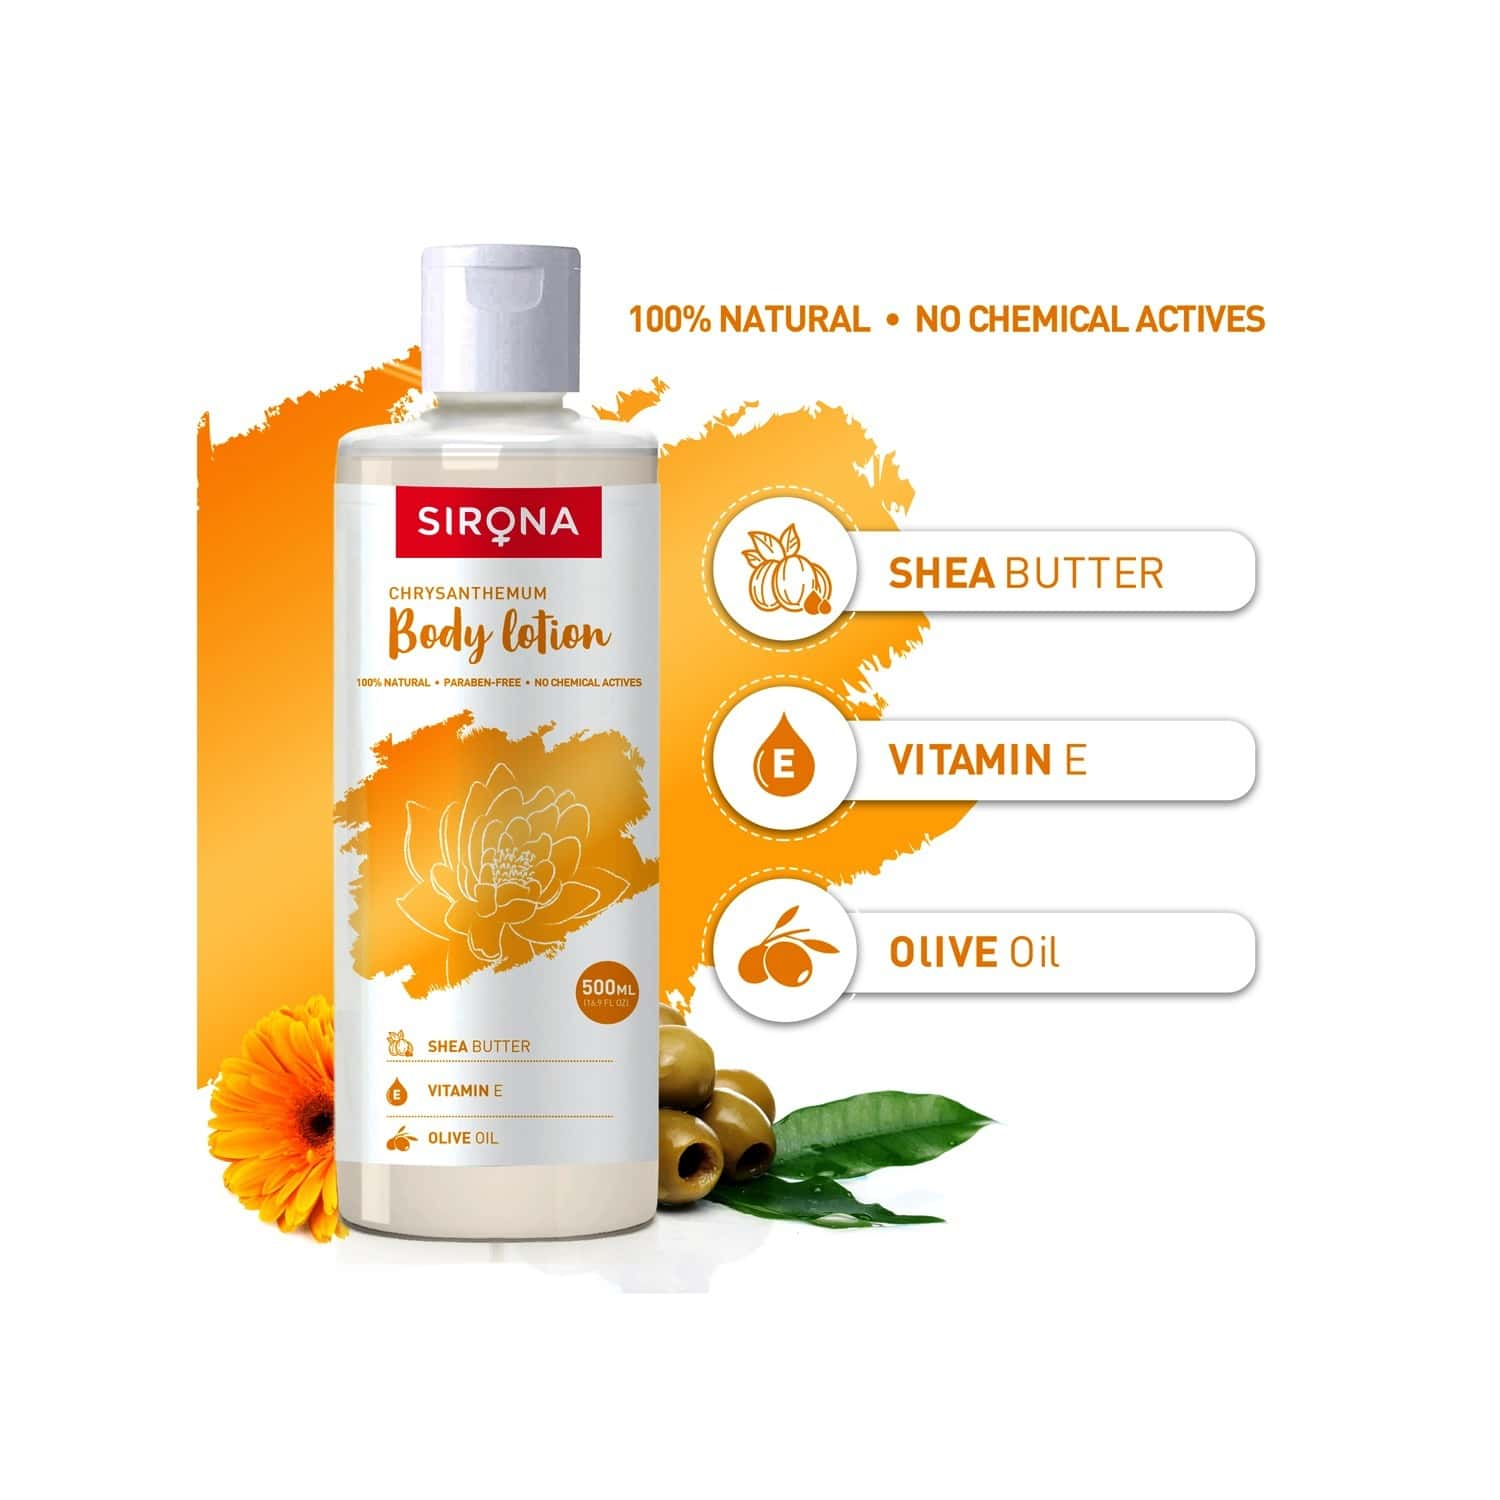 Sirona Natural Chrysanthemum Body Lotion With Shea Butter- Vitamin E And Olive Oil - 500ml